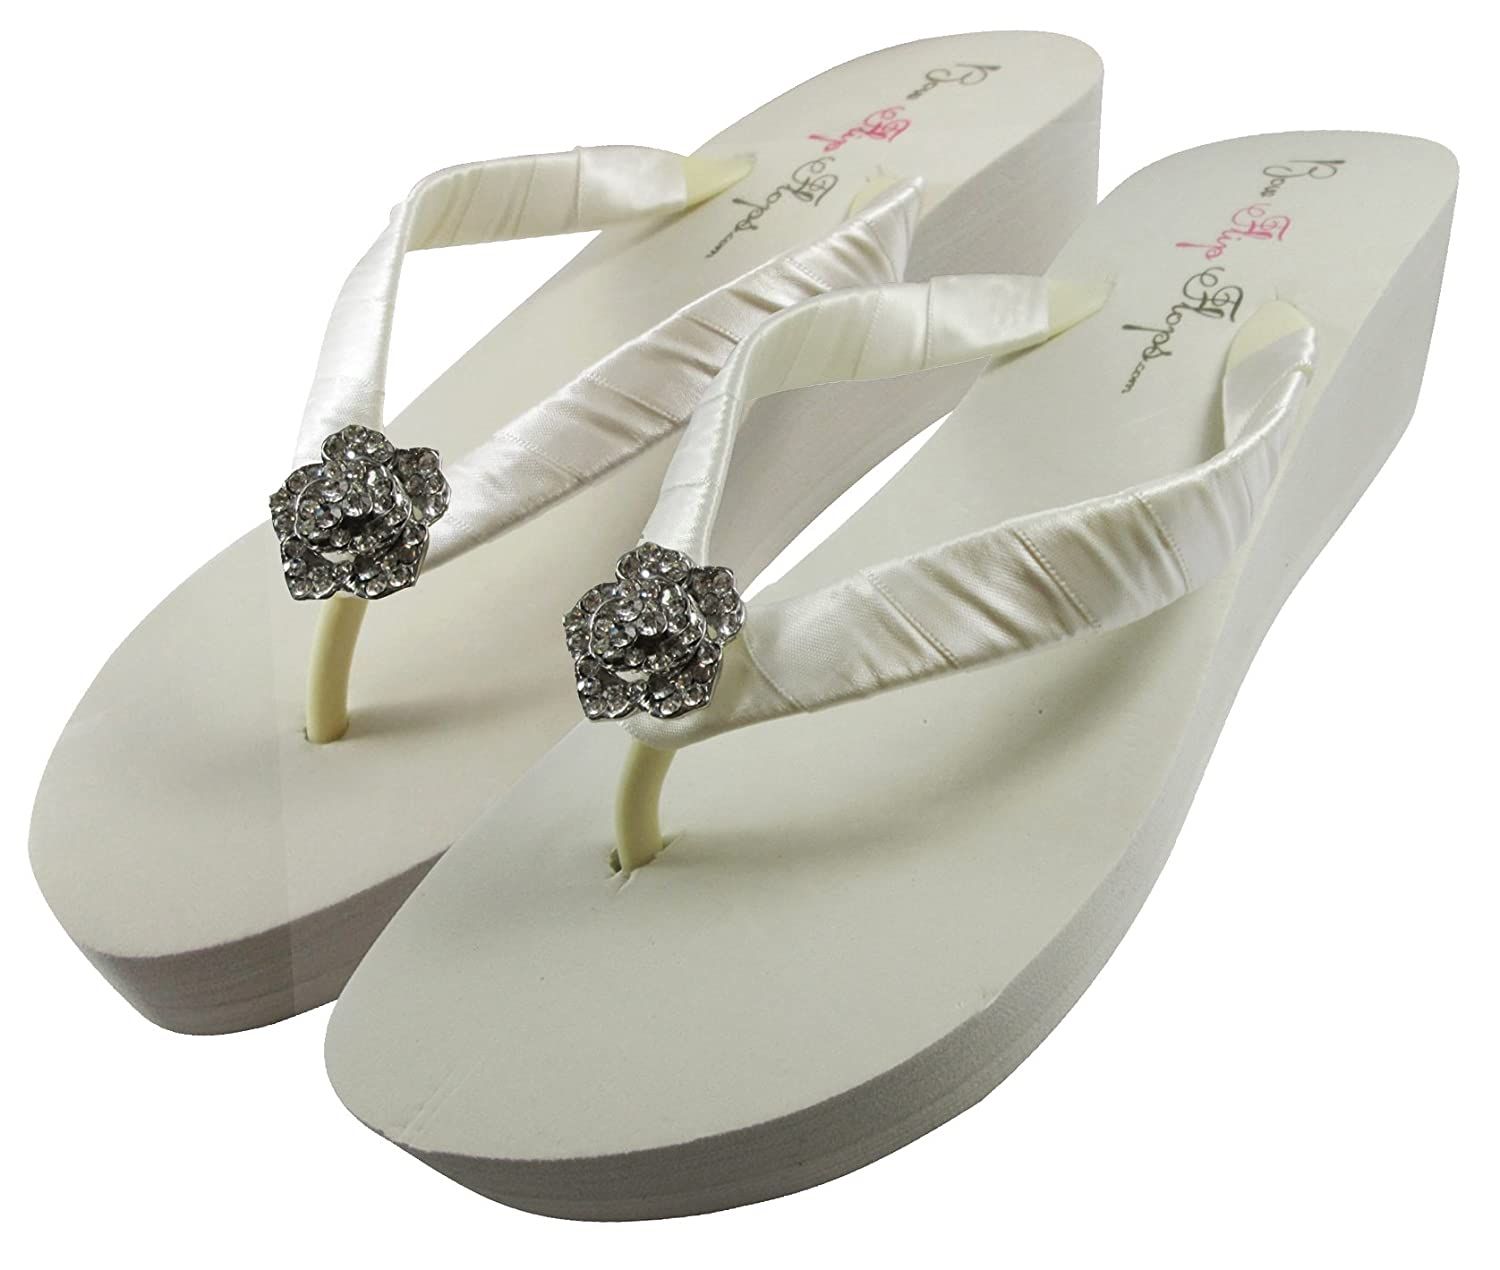 feea81ad4 Amazon.com  Bridal Flip Flops Wedding Ivory Wedge White Platform Bride Rose  Heel Satin Rhinestone Flip Flops  Handmade